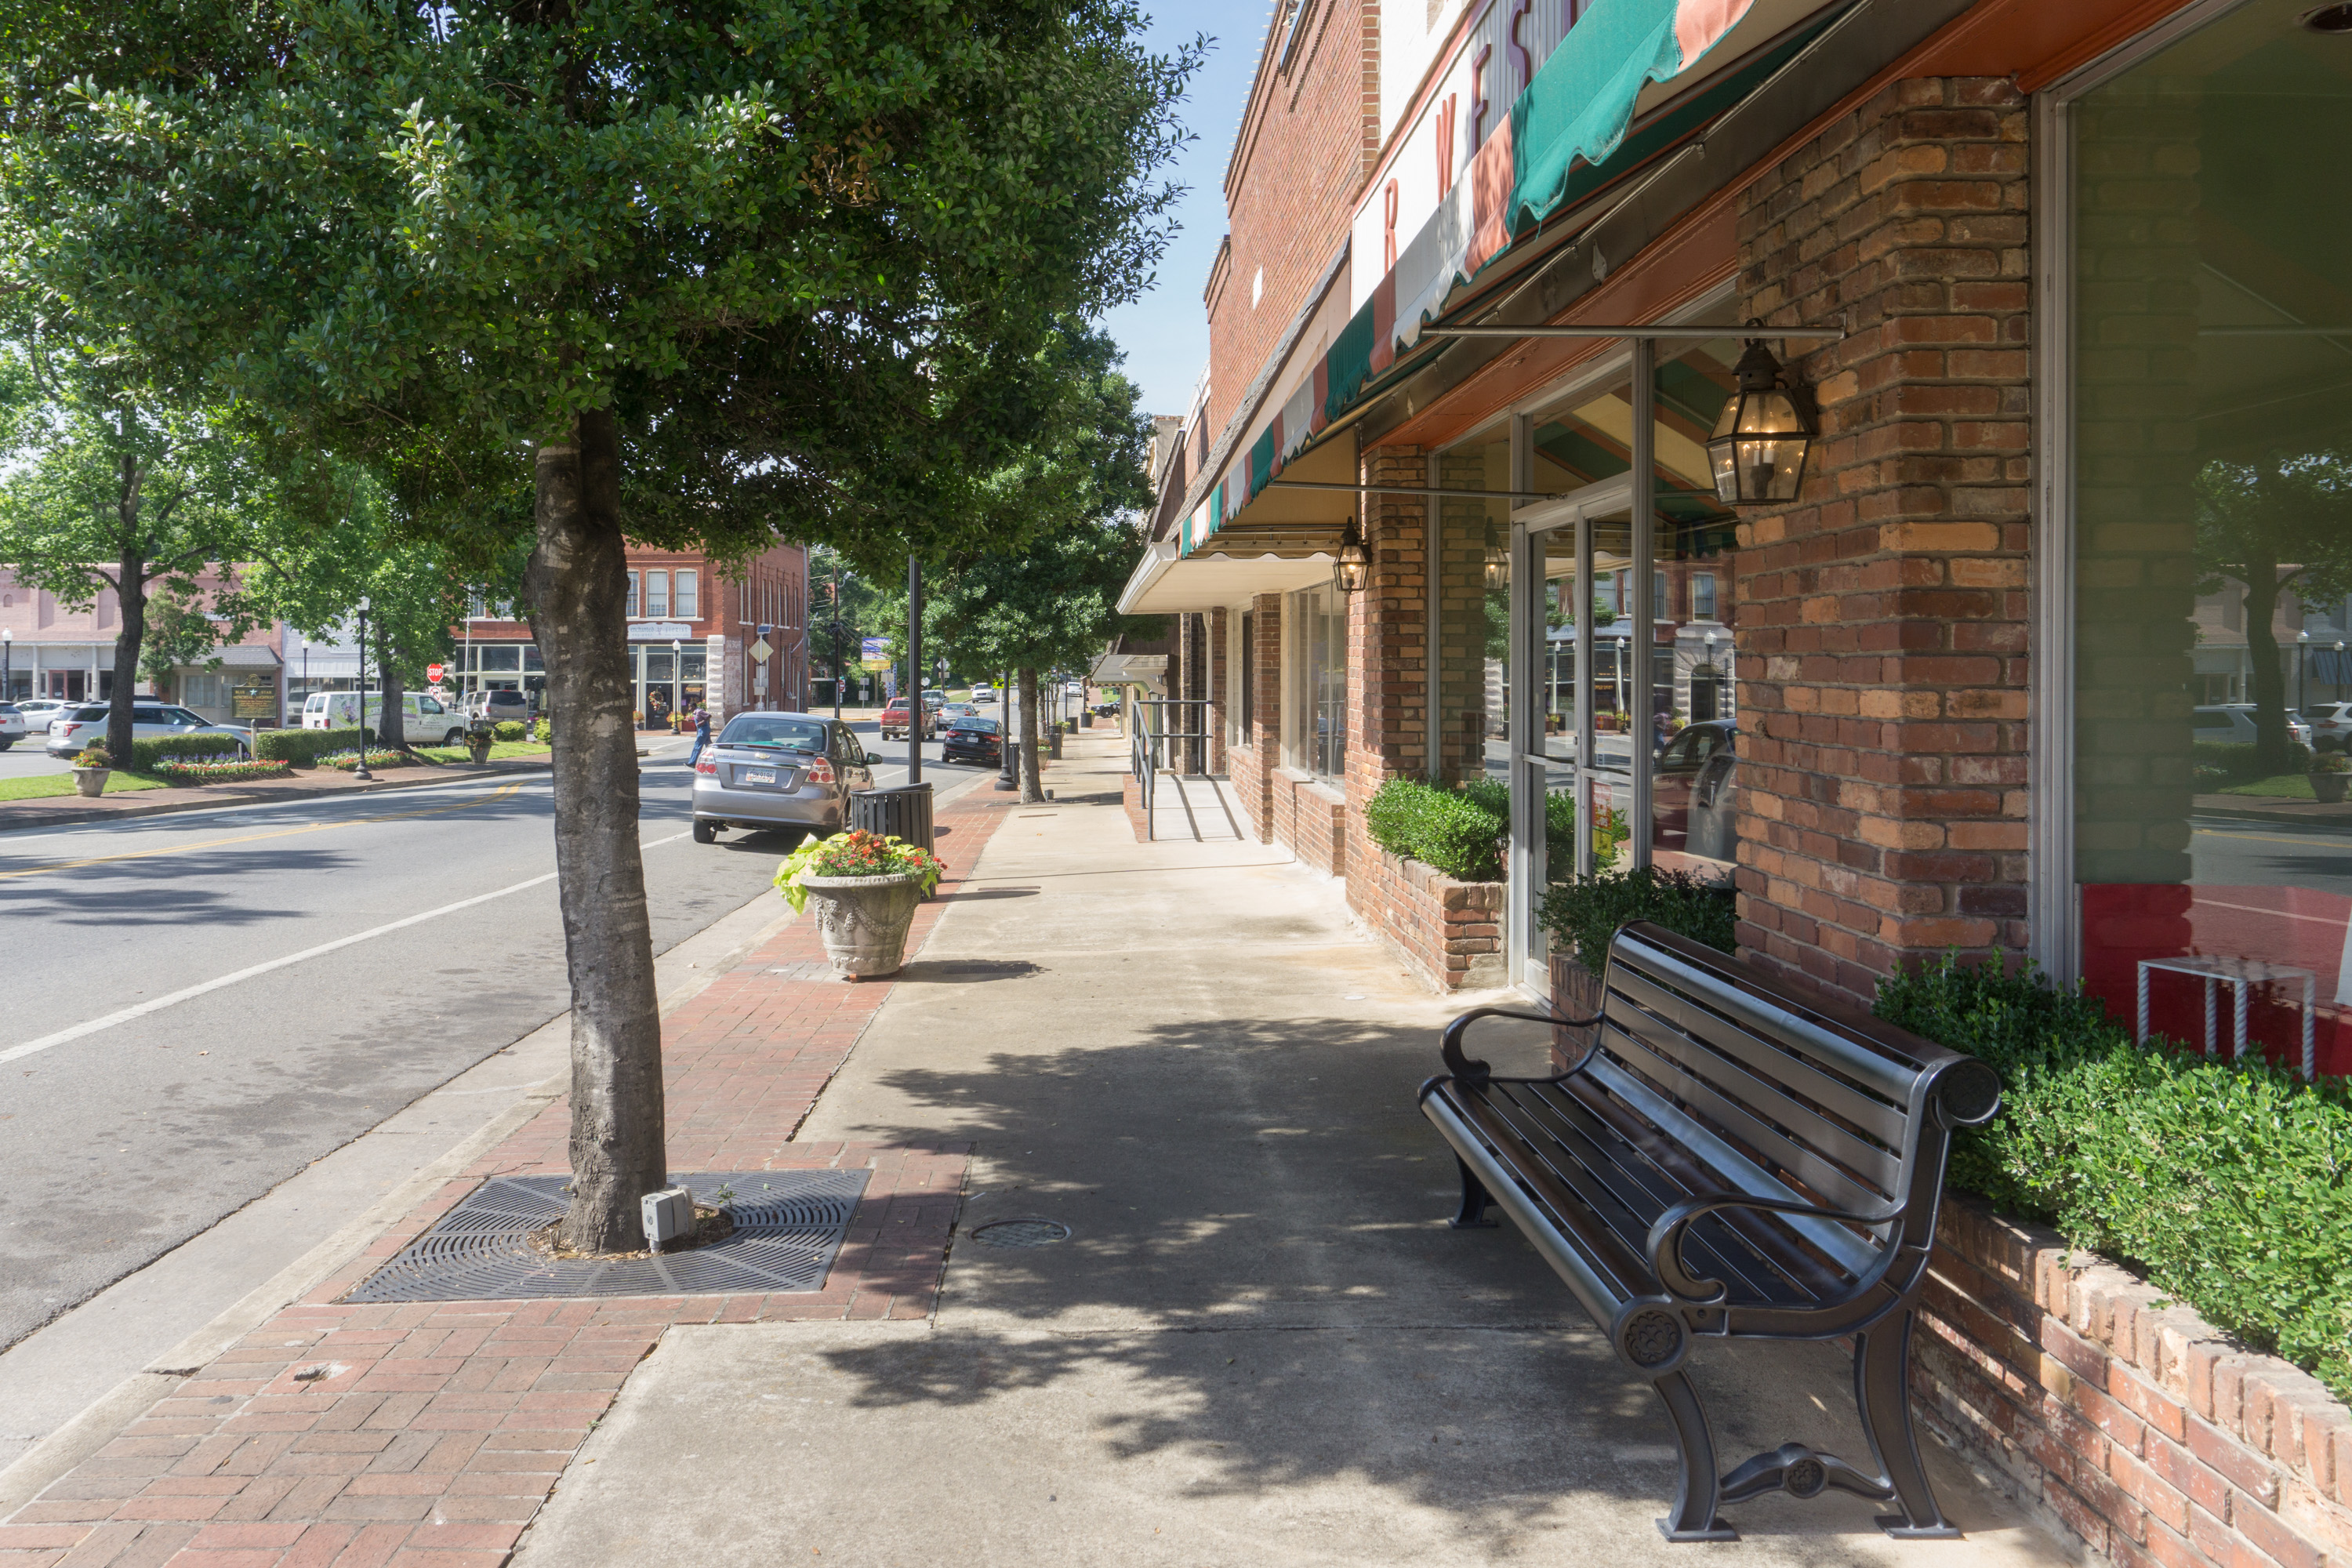 Washington_Sandersville_downtown10